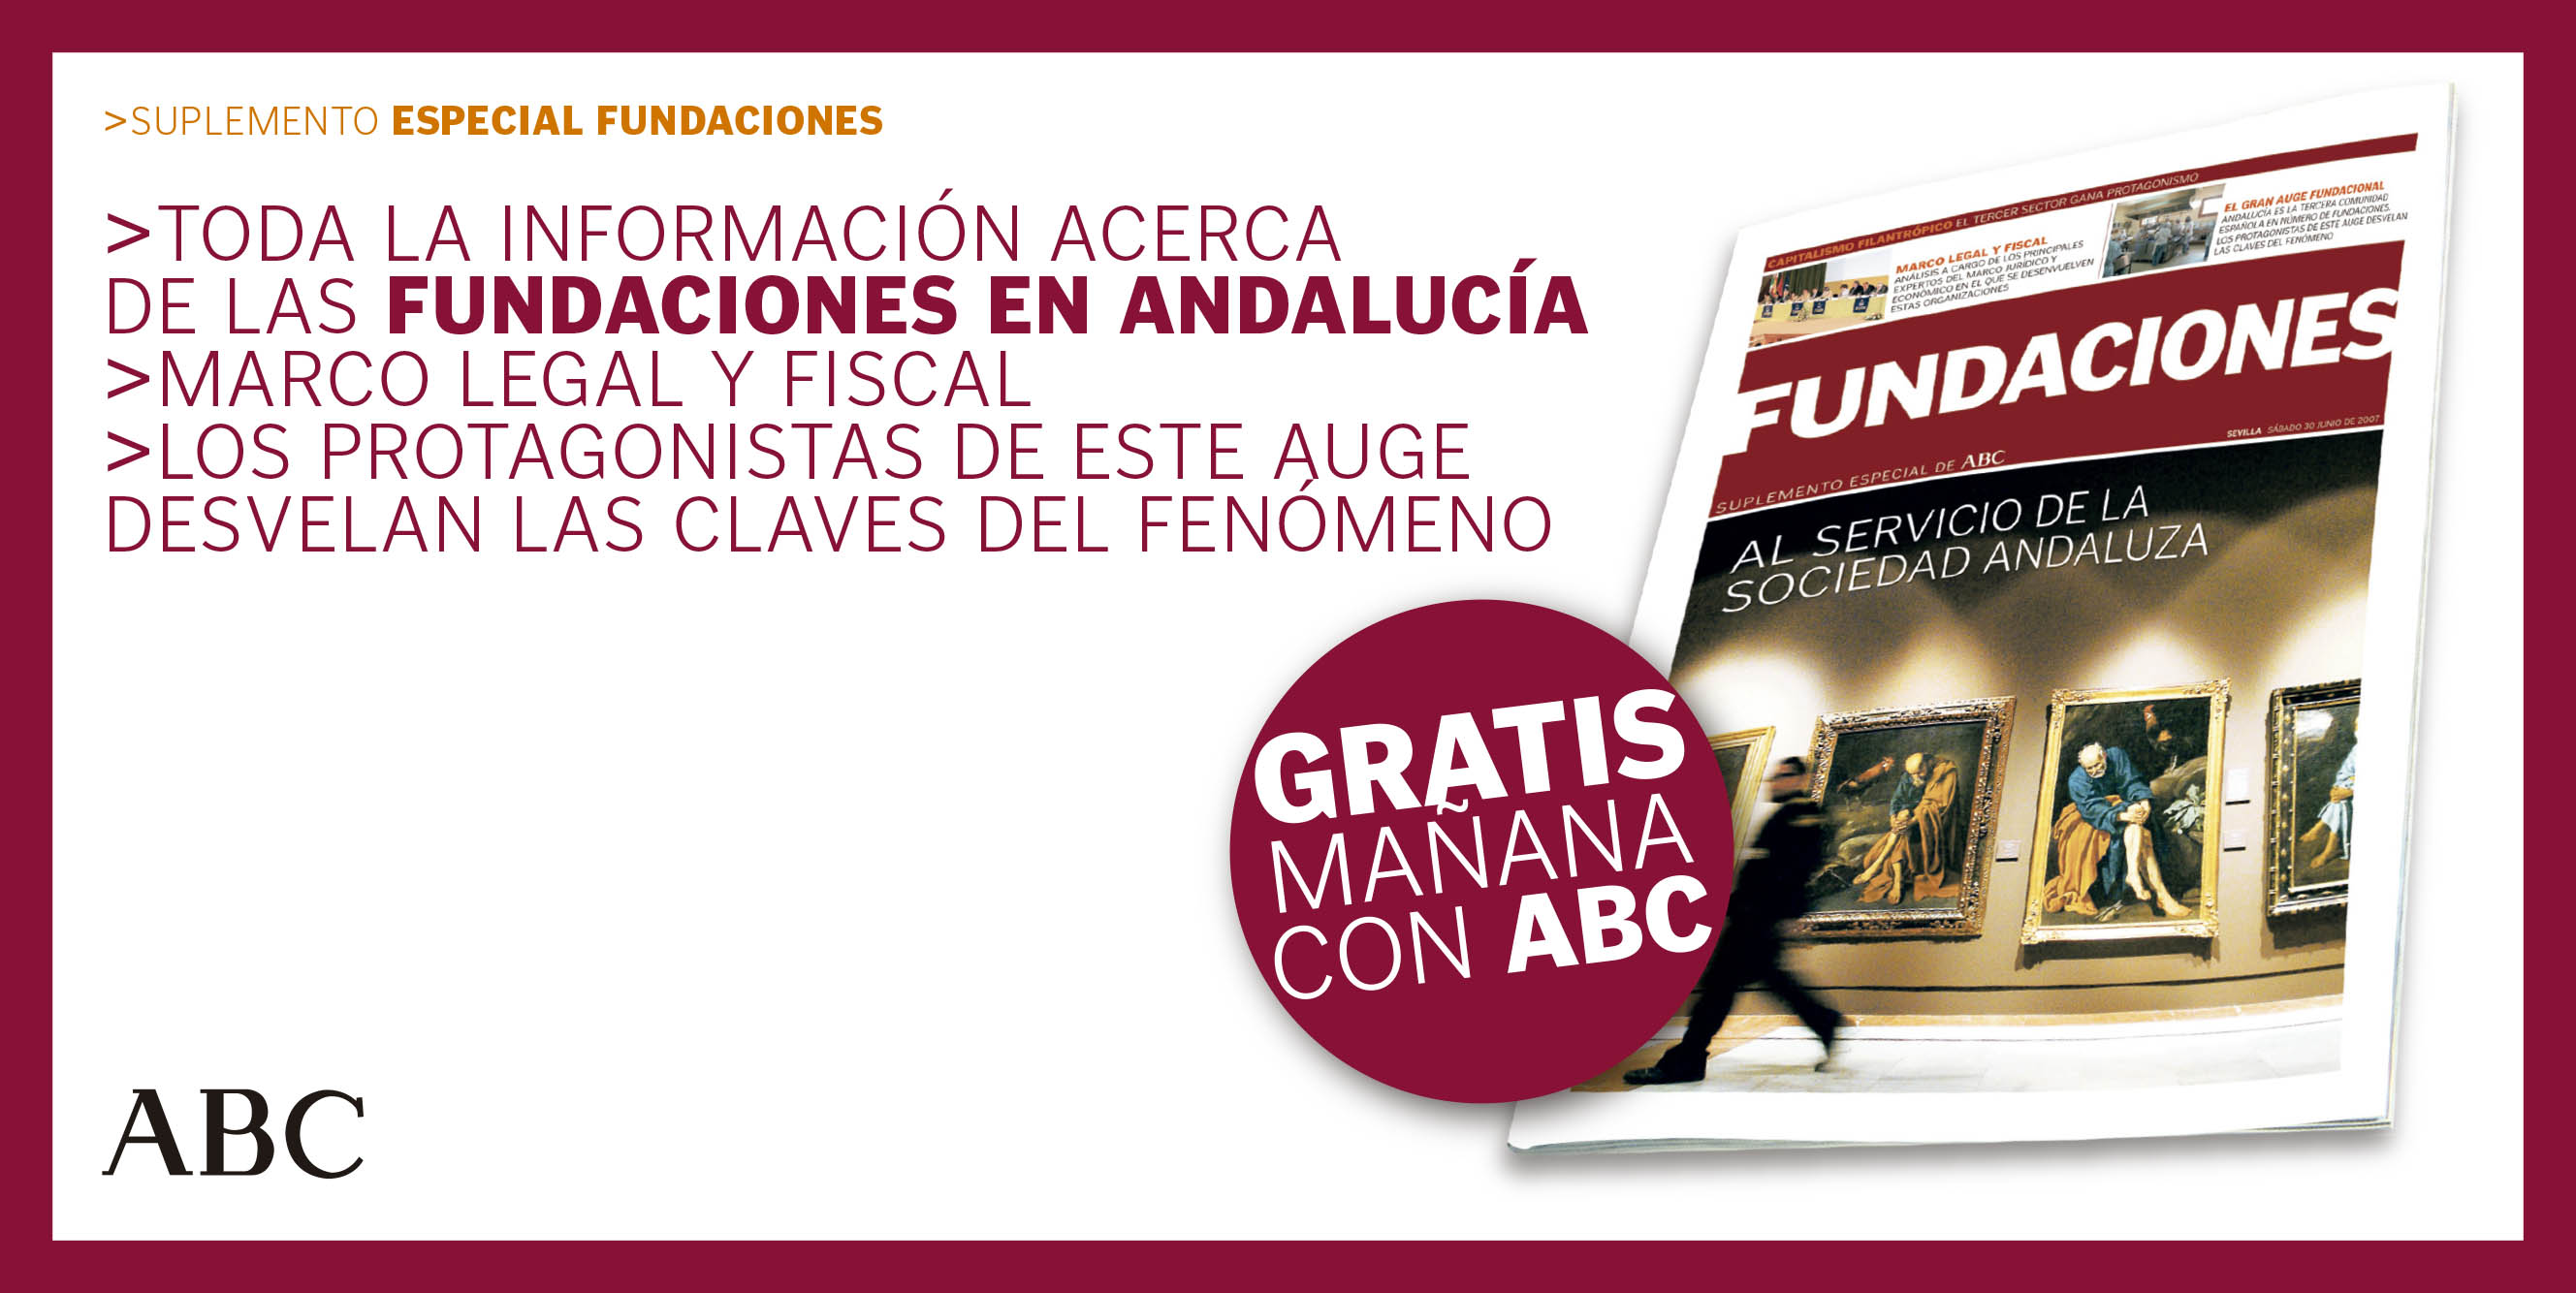 Especial Fundaciones - ABC | jun 2007